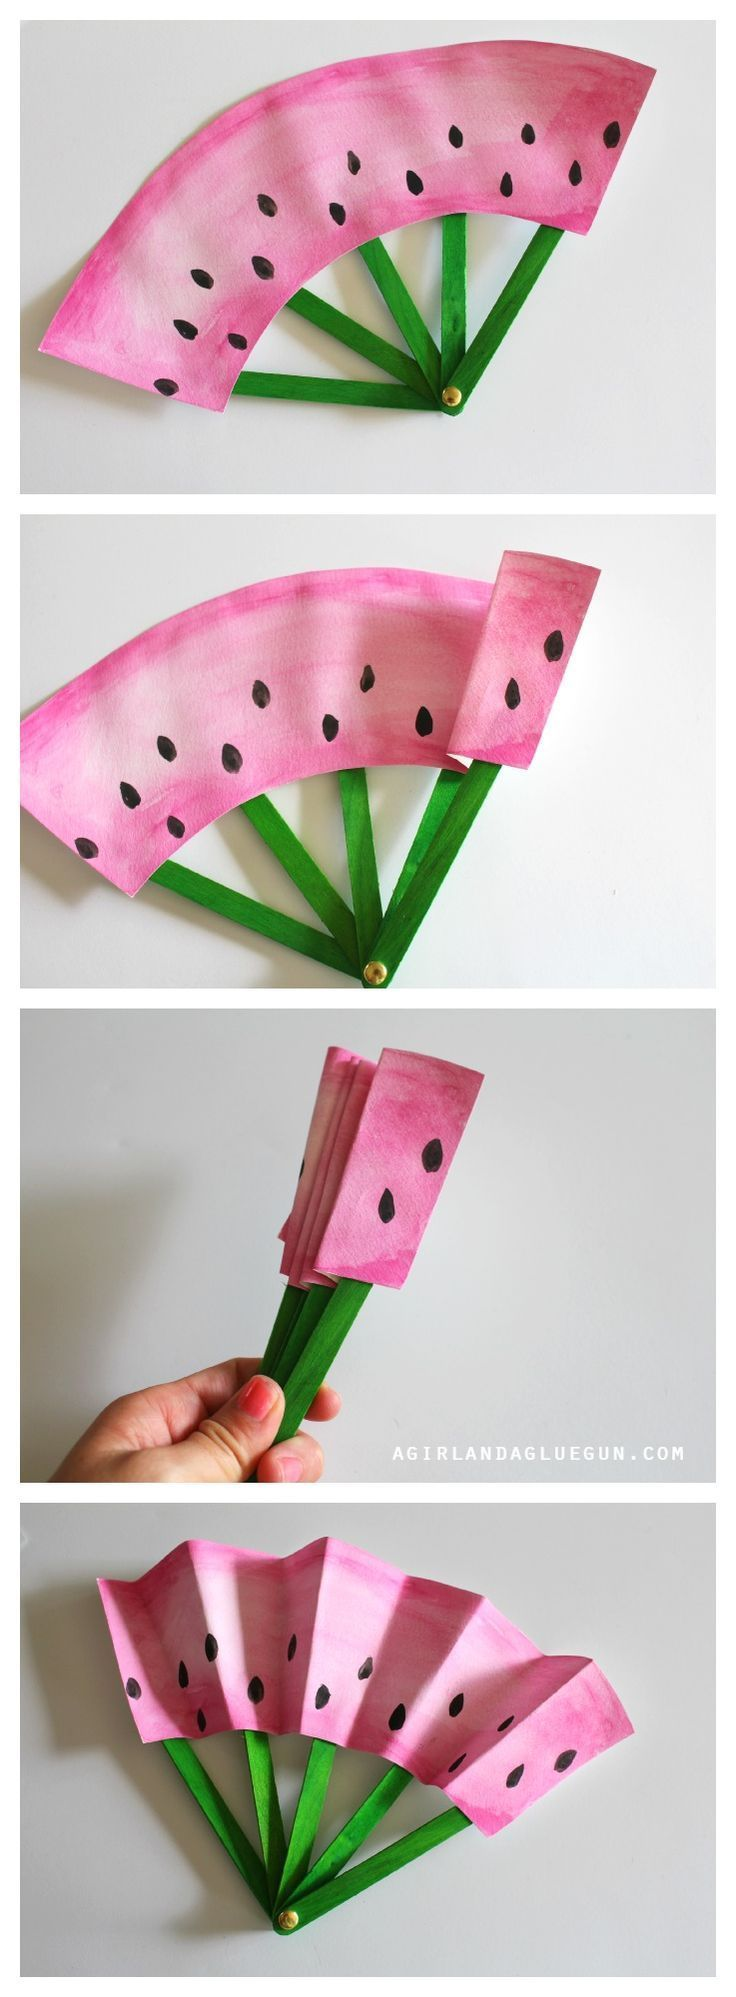 Best 25 crafts for kids ideas on pinterest for How to make simple crafts at home